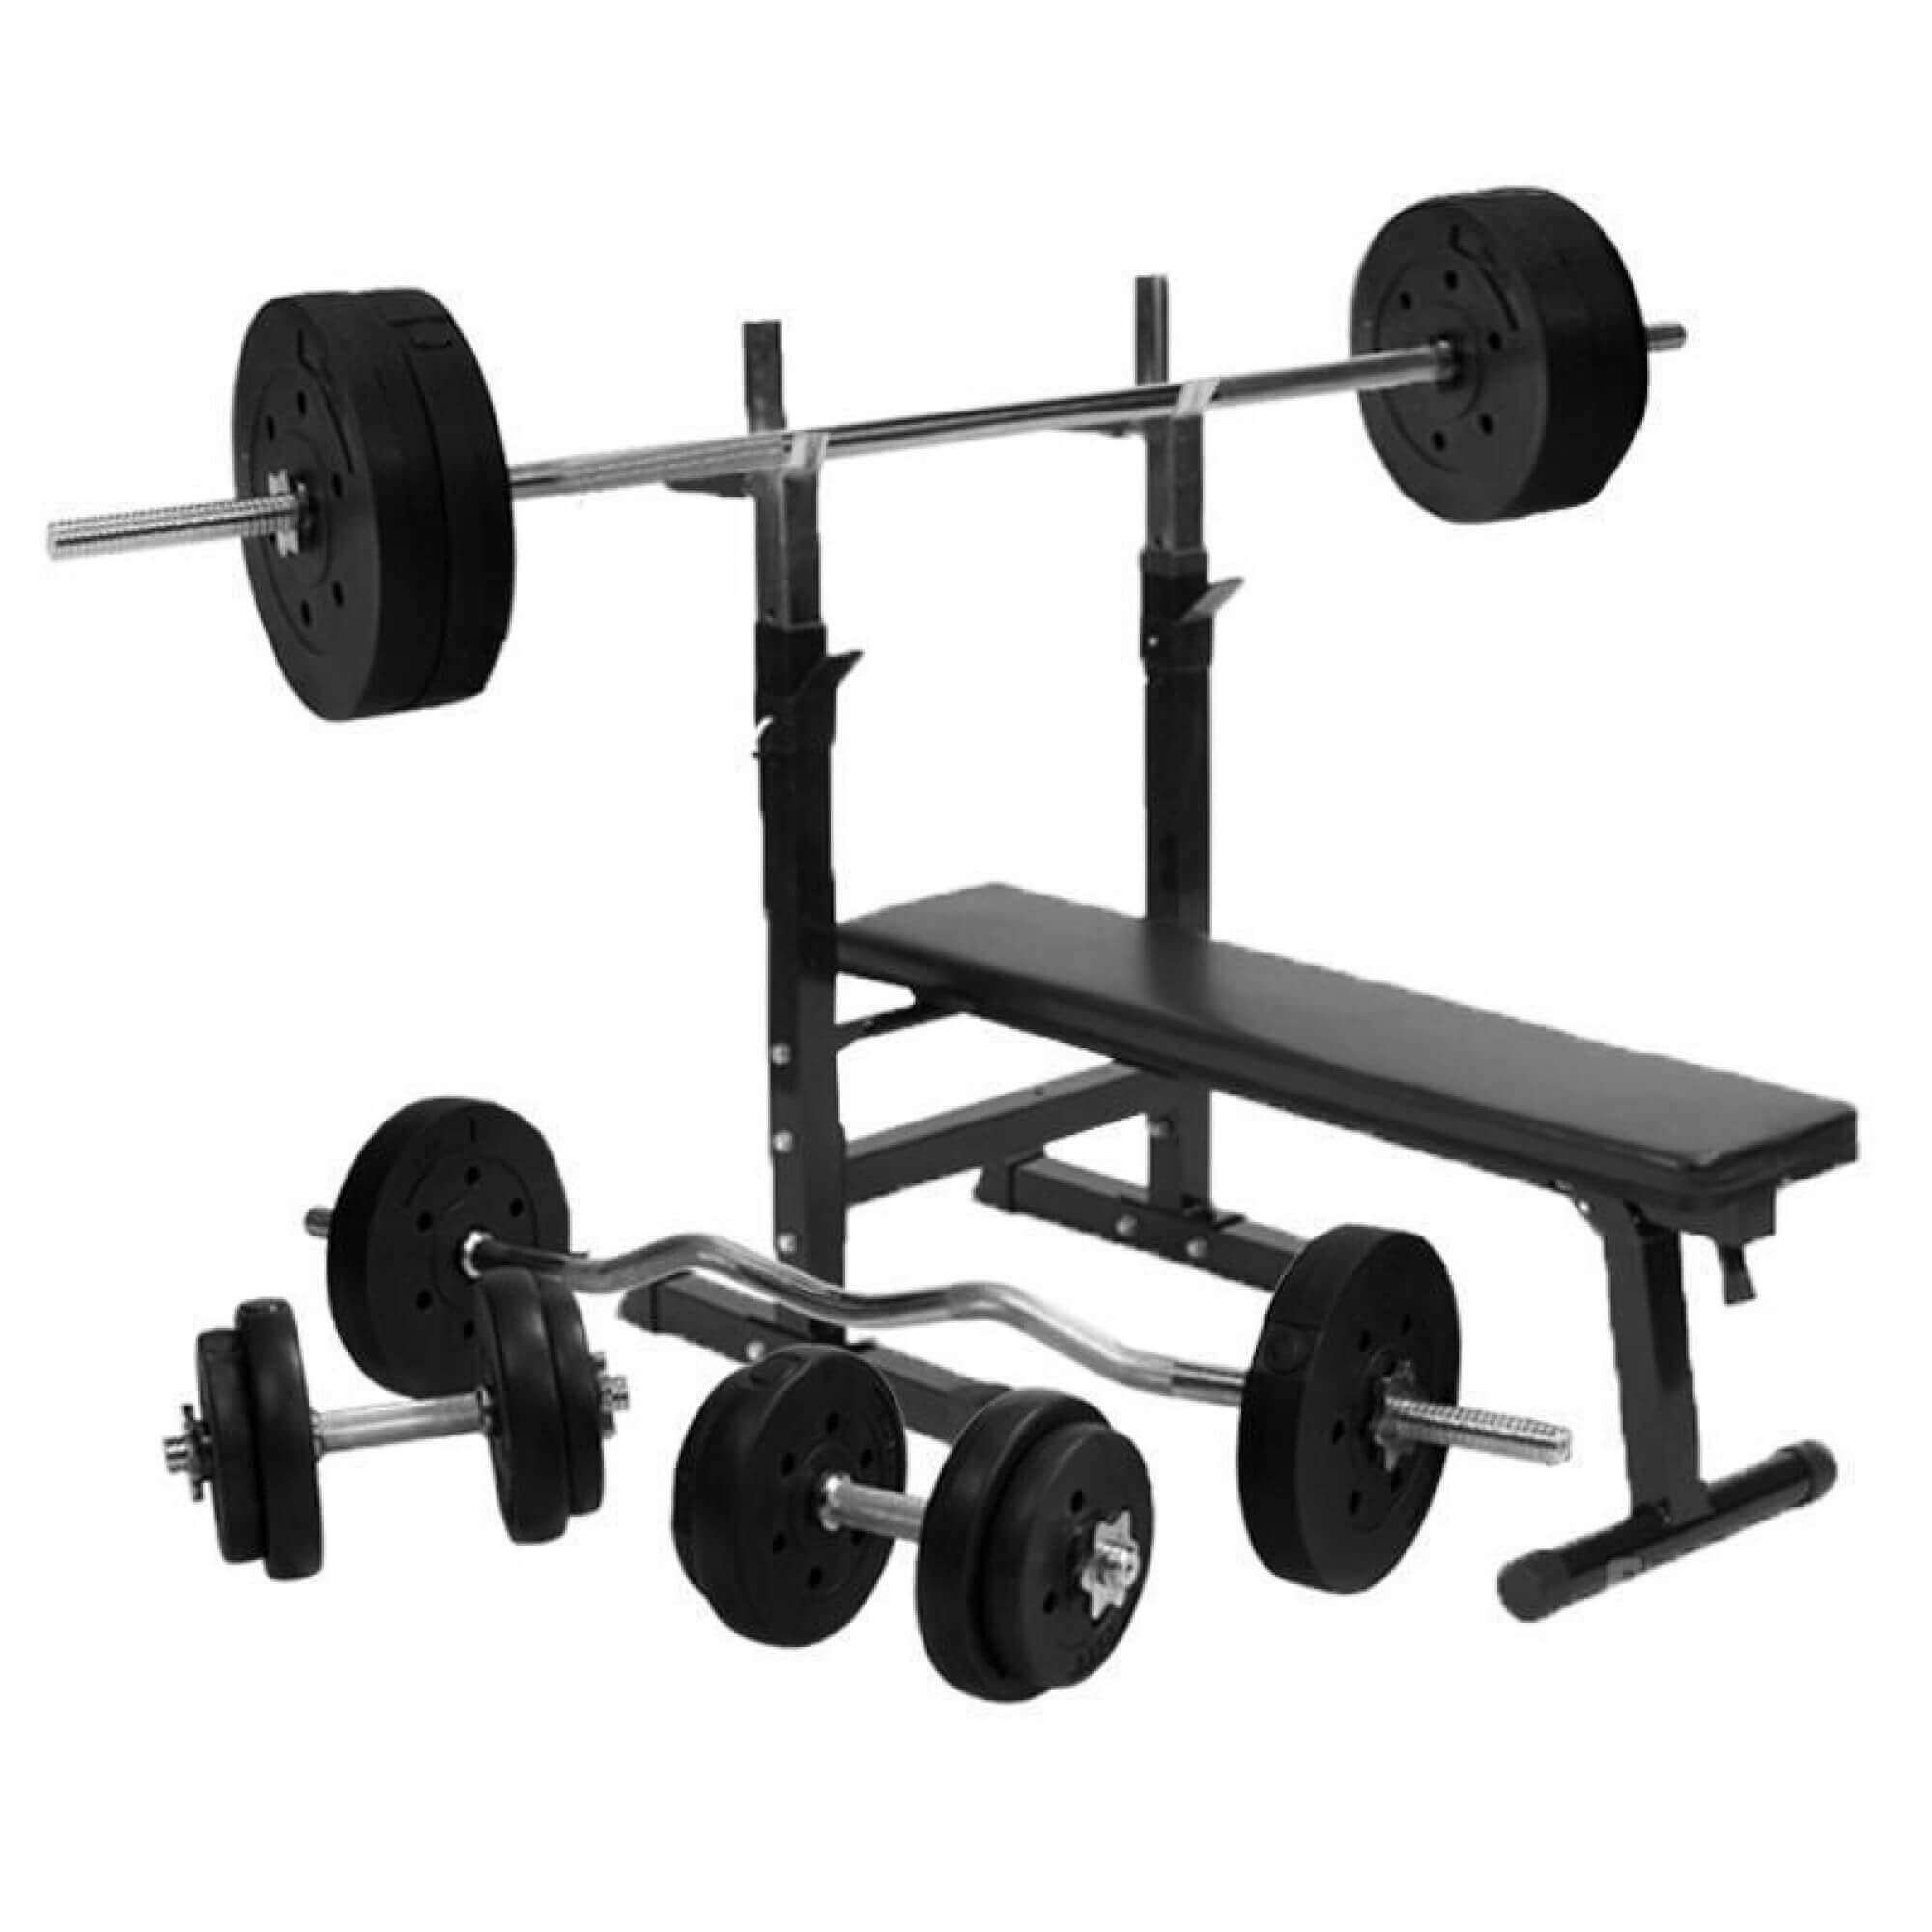 one size sports dp olympic weights unisex co amazon squat elite and rack black marcy diamond with weight outdoors bench uk